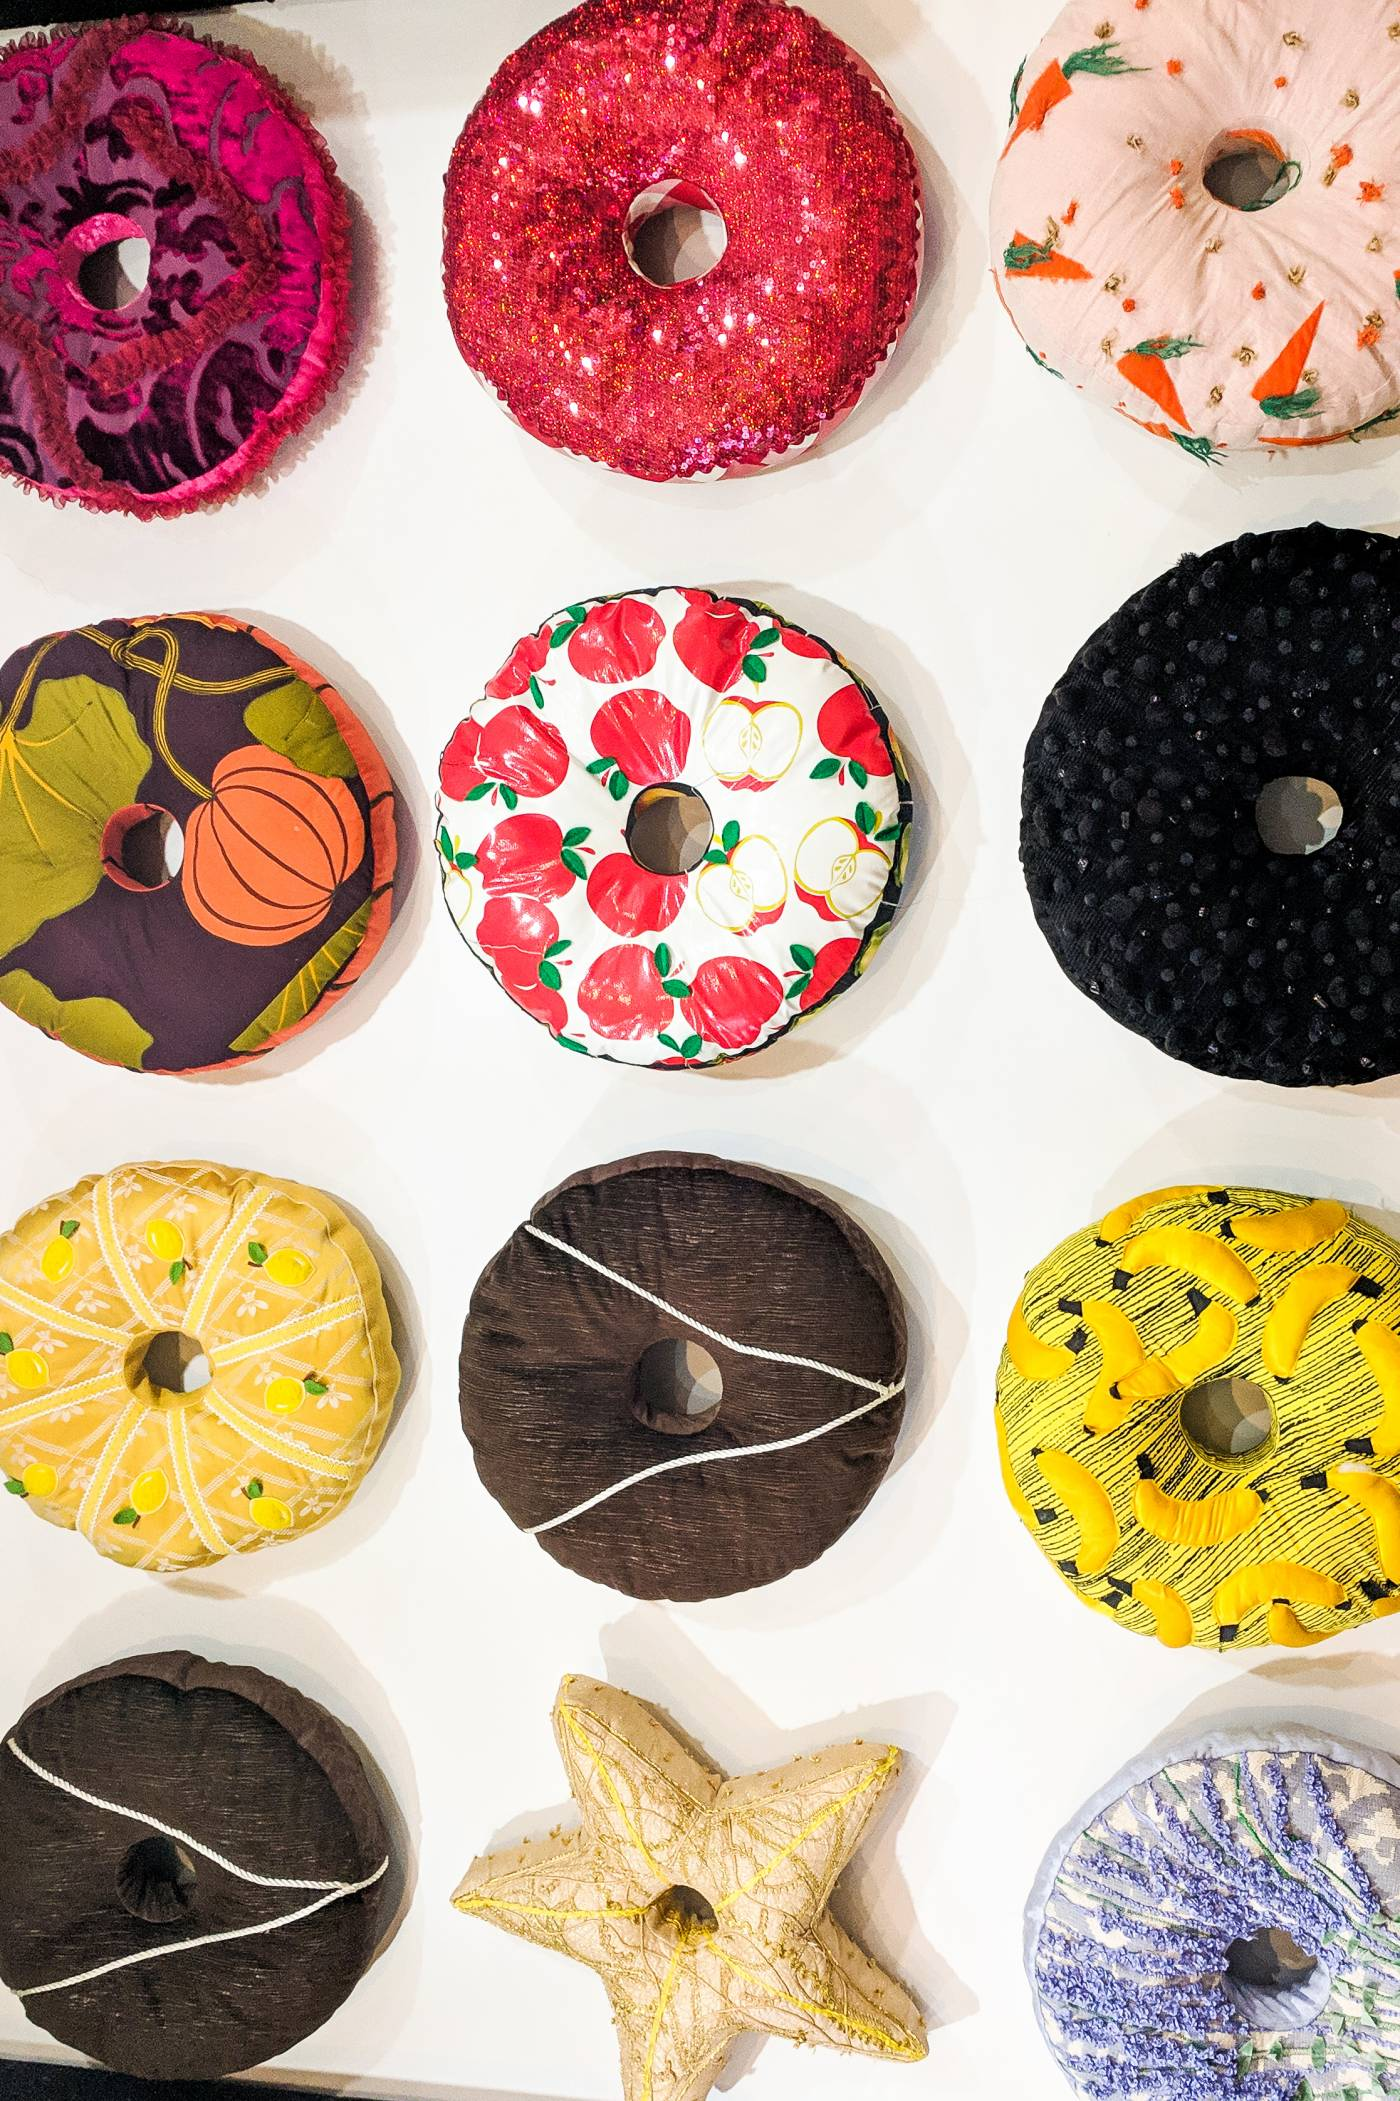 Where to eat in new york, new york, doughnut plant, NYC, travel blogger, food blogger